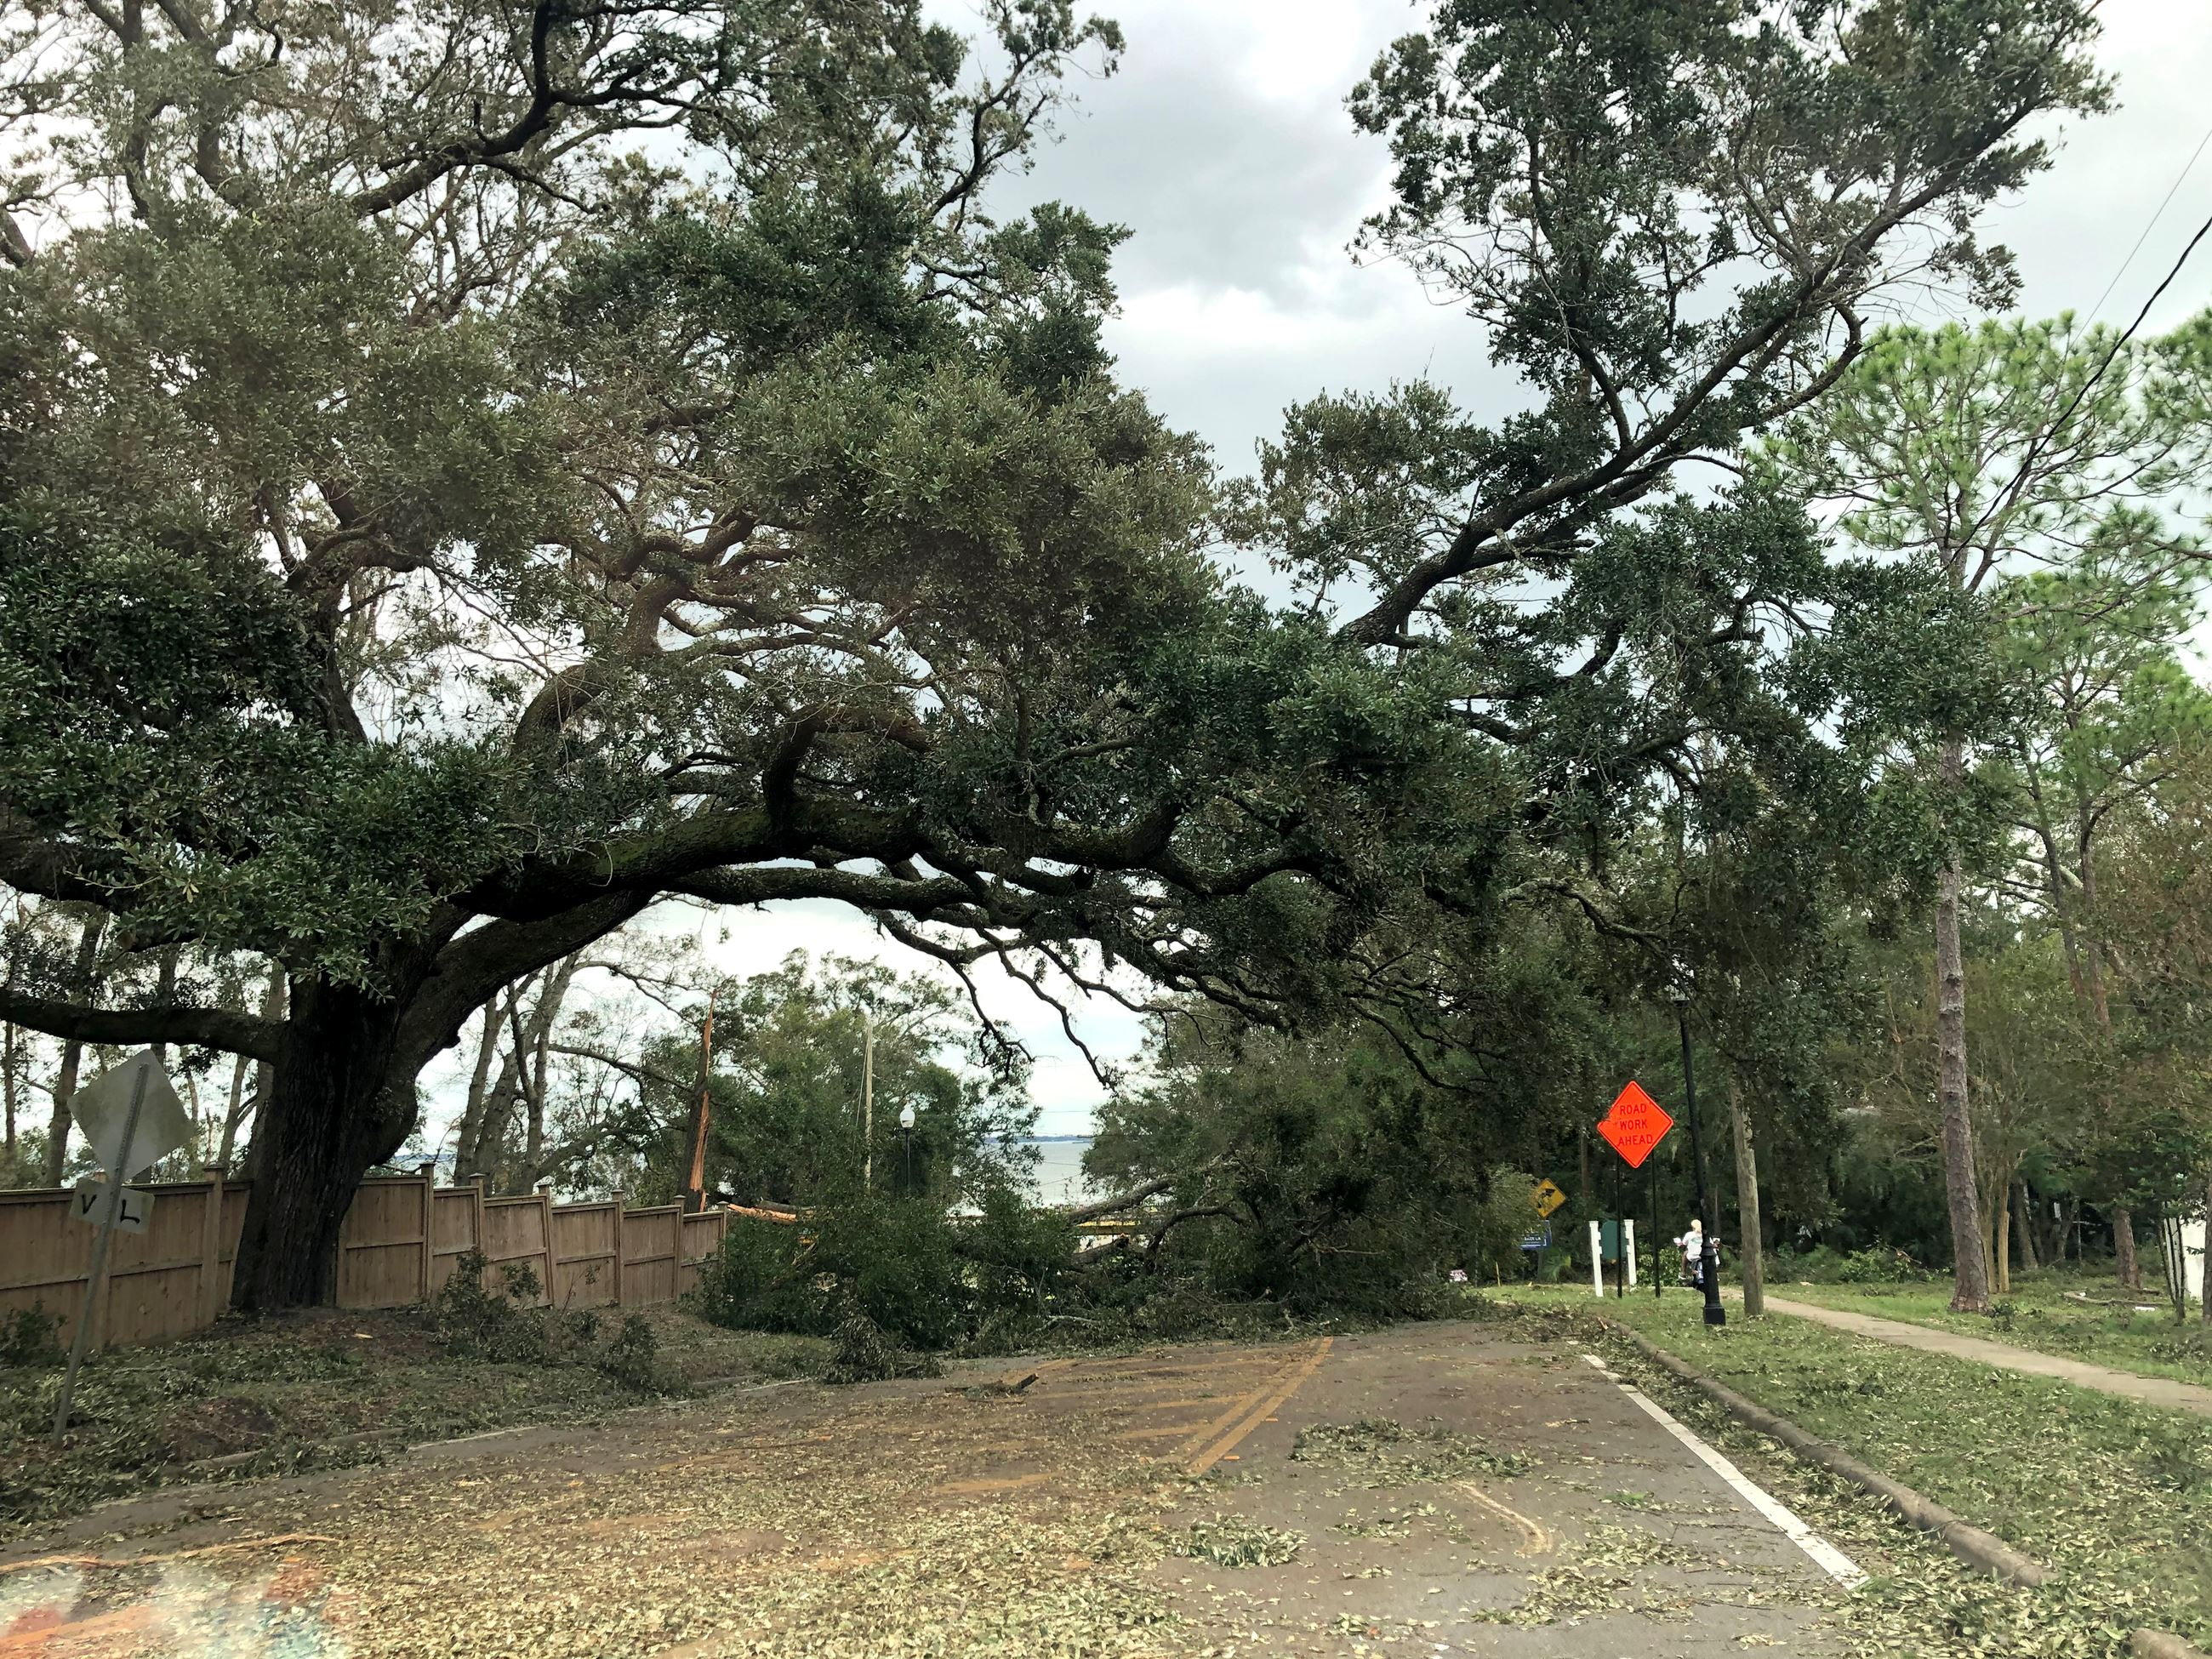 Downed trees in the roadway from hurricane Sally